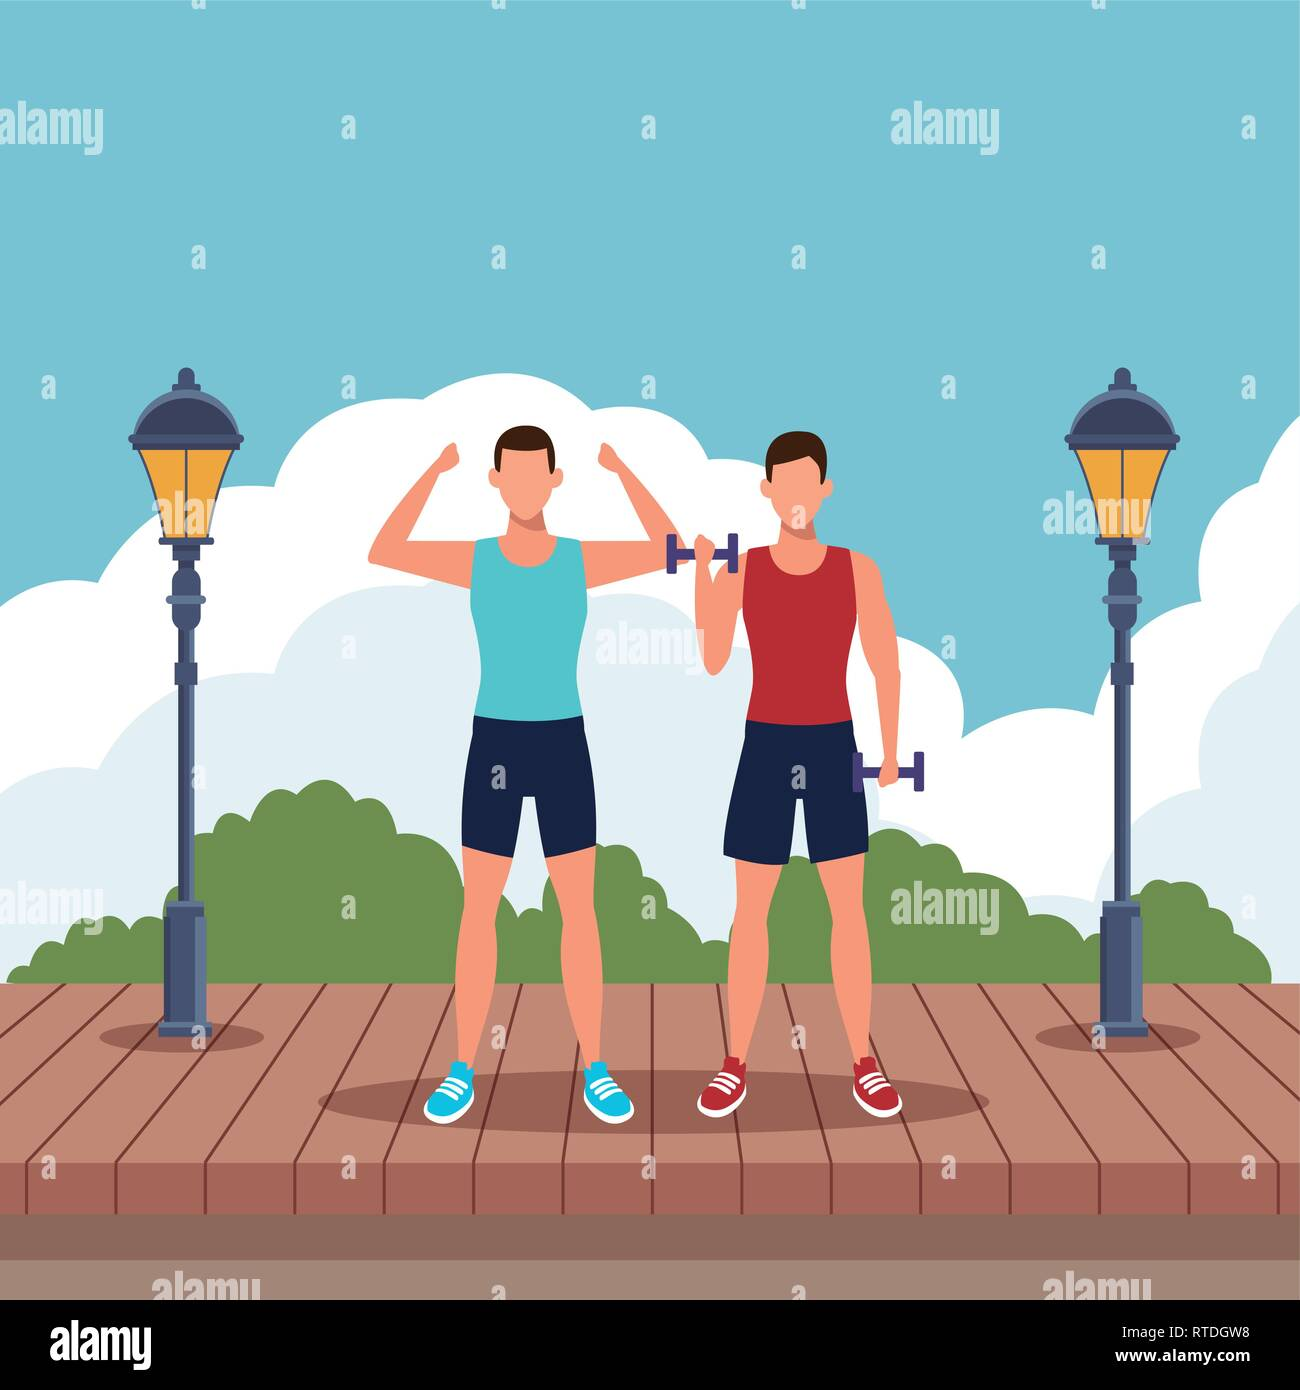 men working out - Stock Vector